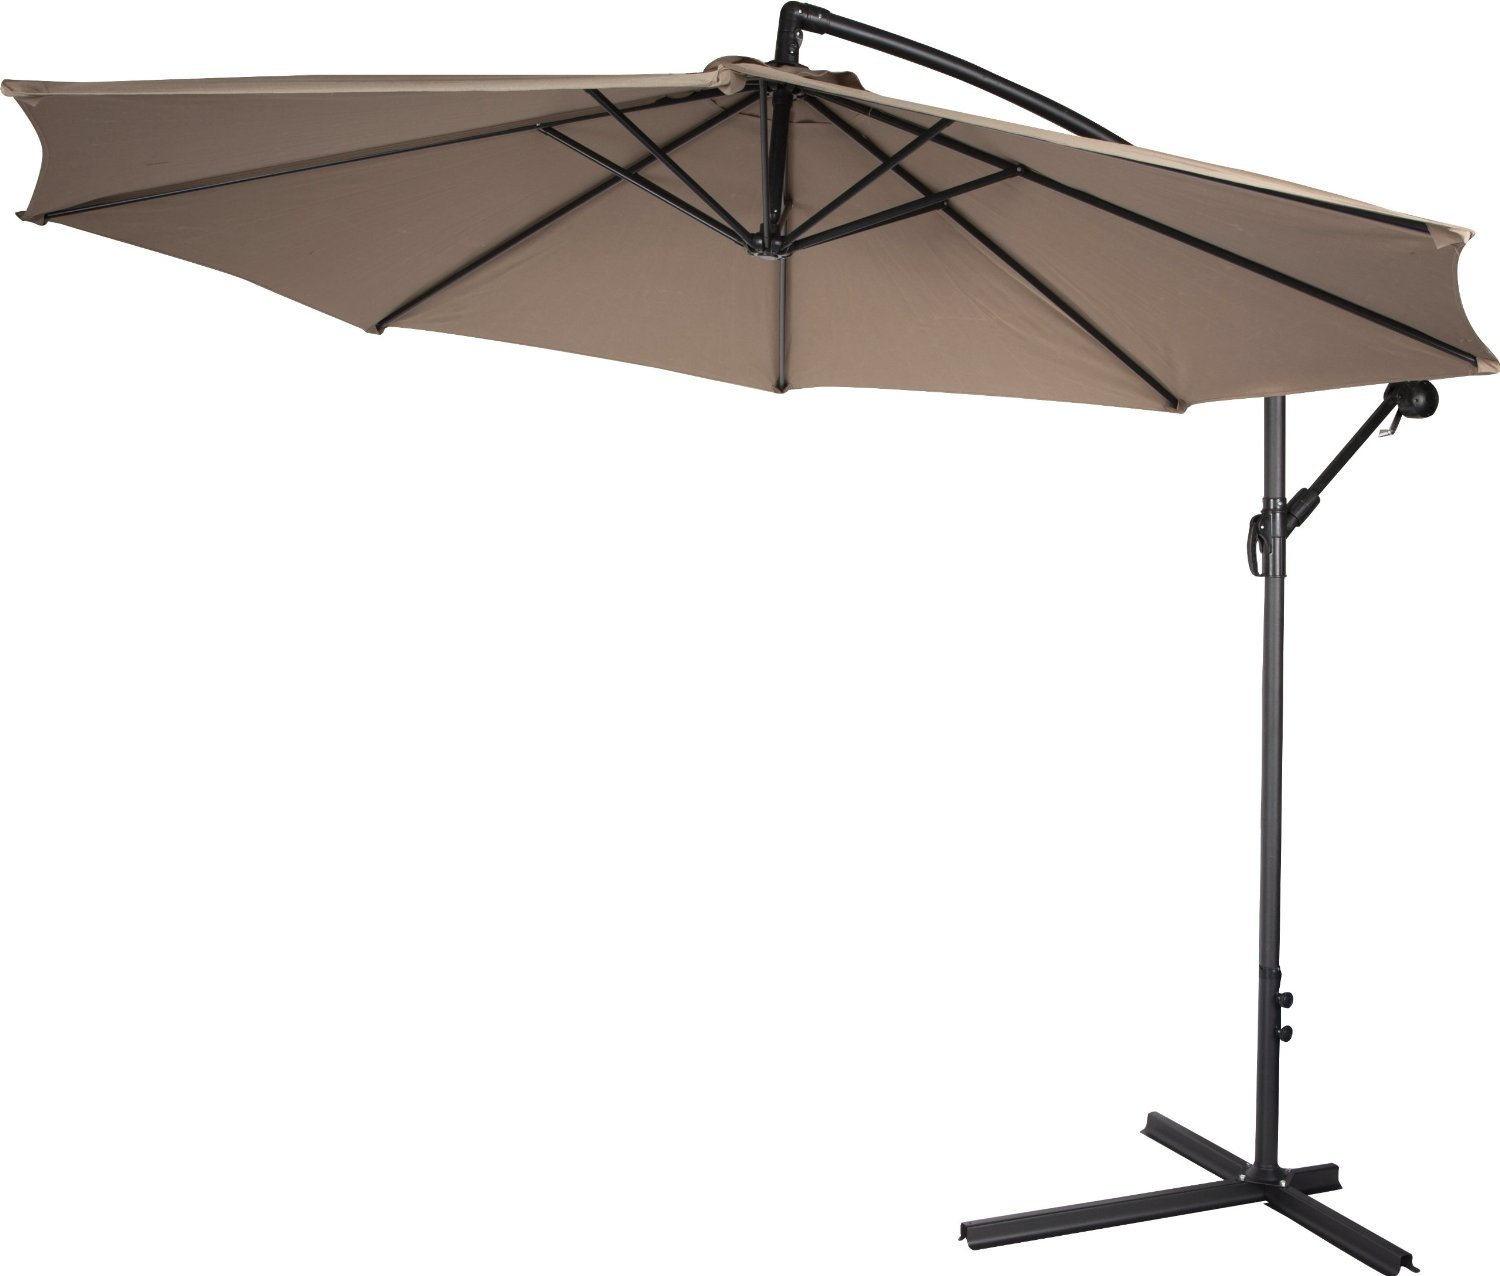 Amazon.com : Trademark Innovations Deluxe Polyester Offset Patio Umbrella    10u0027 (Tan) : Garden U0026 Outdoor